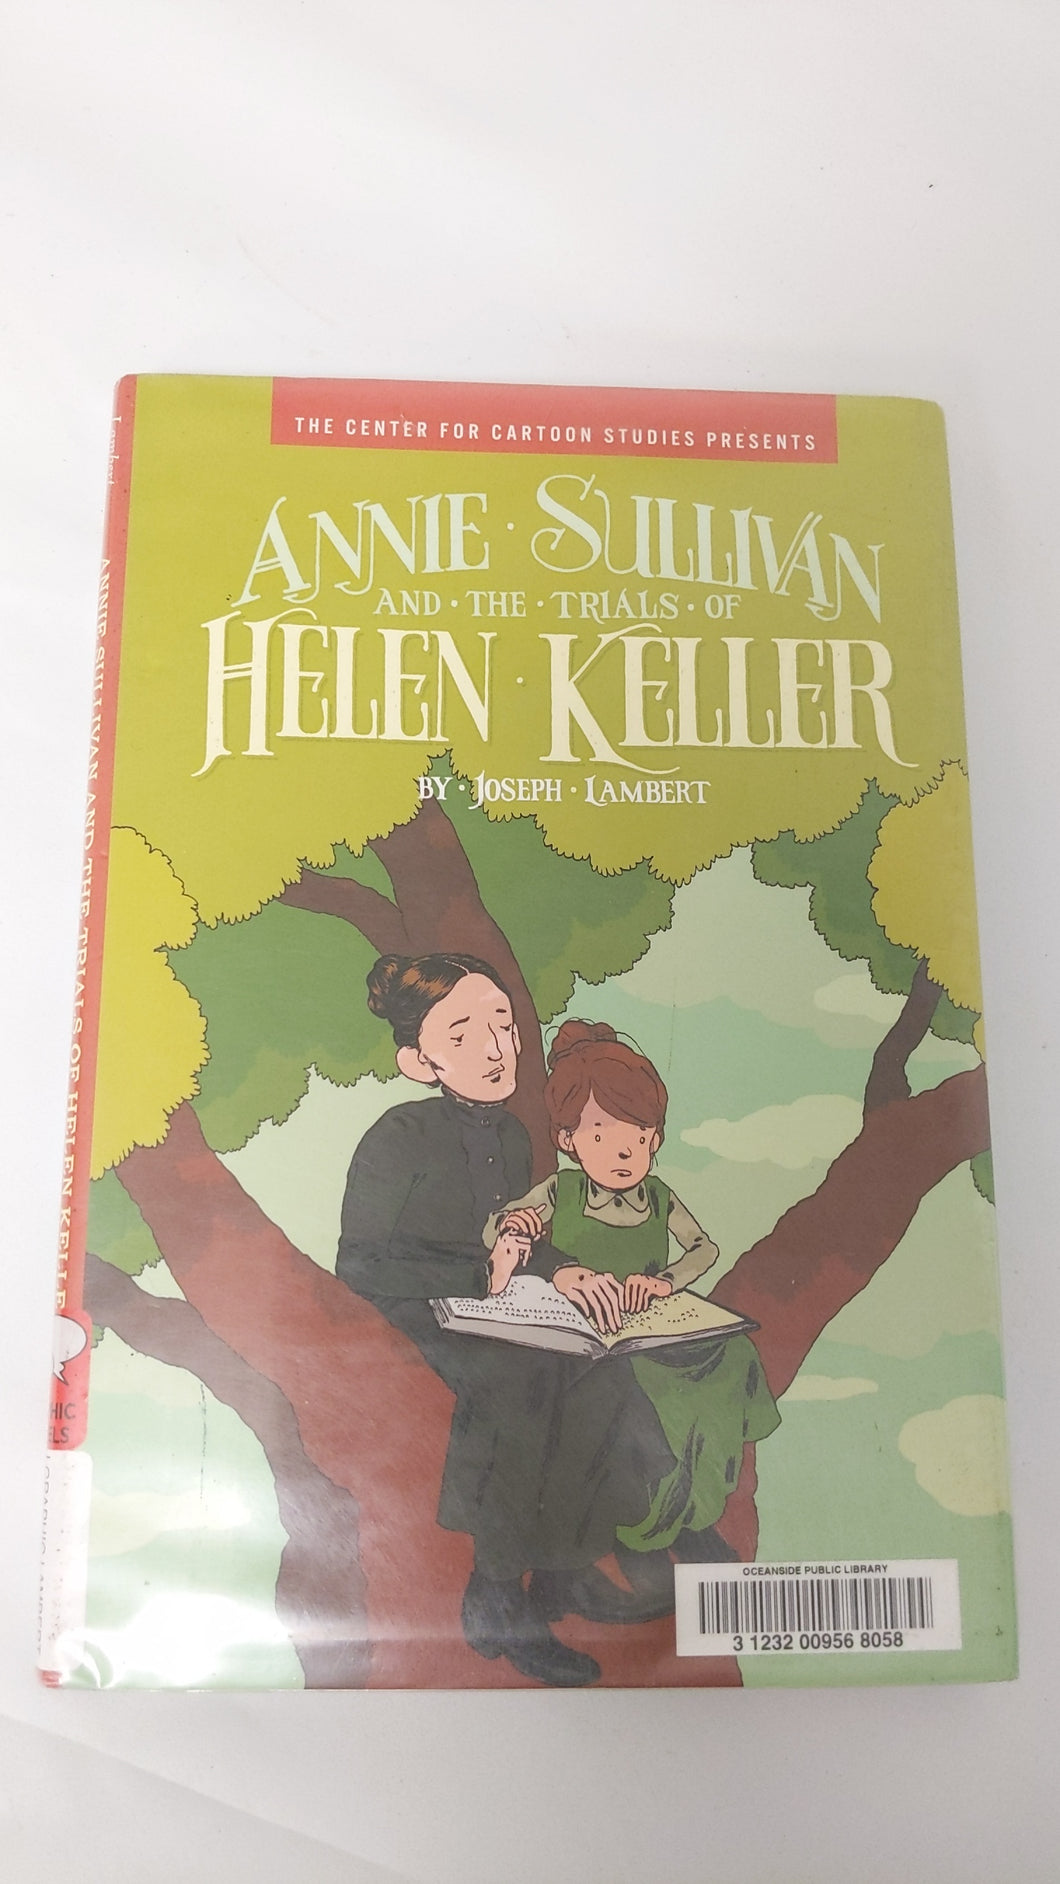 Annie Sullivan and the Trials of Helen Keller (The Center for Cartoon Studies Presents) Paperback – Illustrated, September 25, 2018